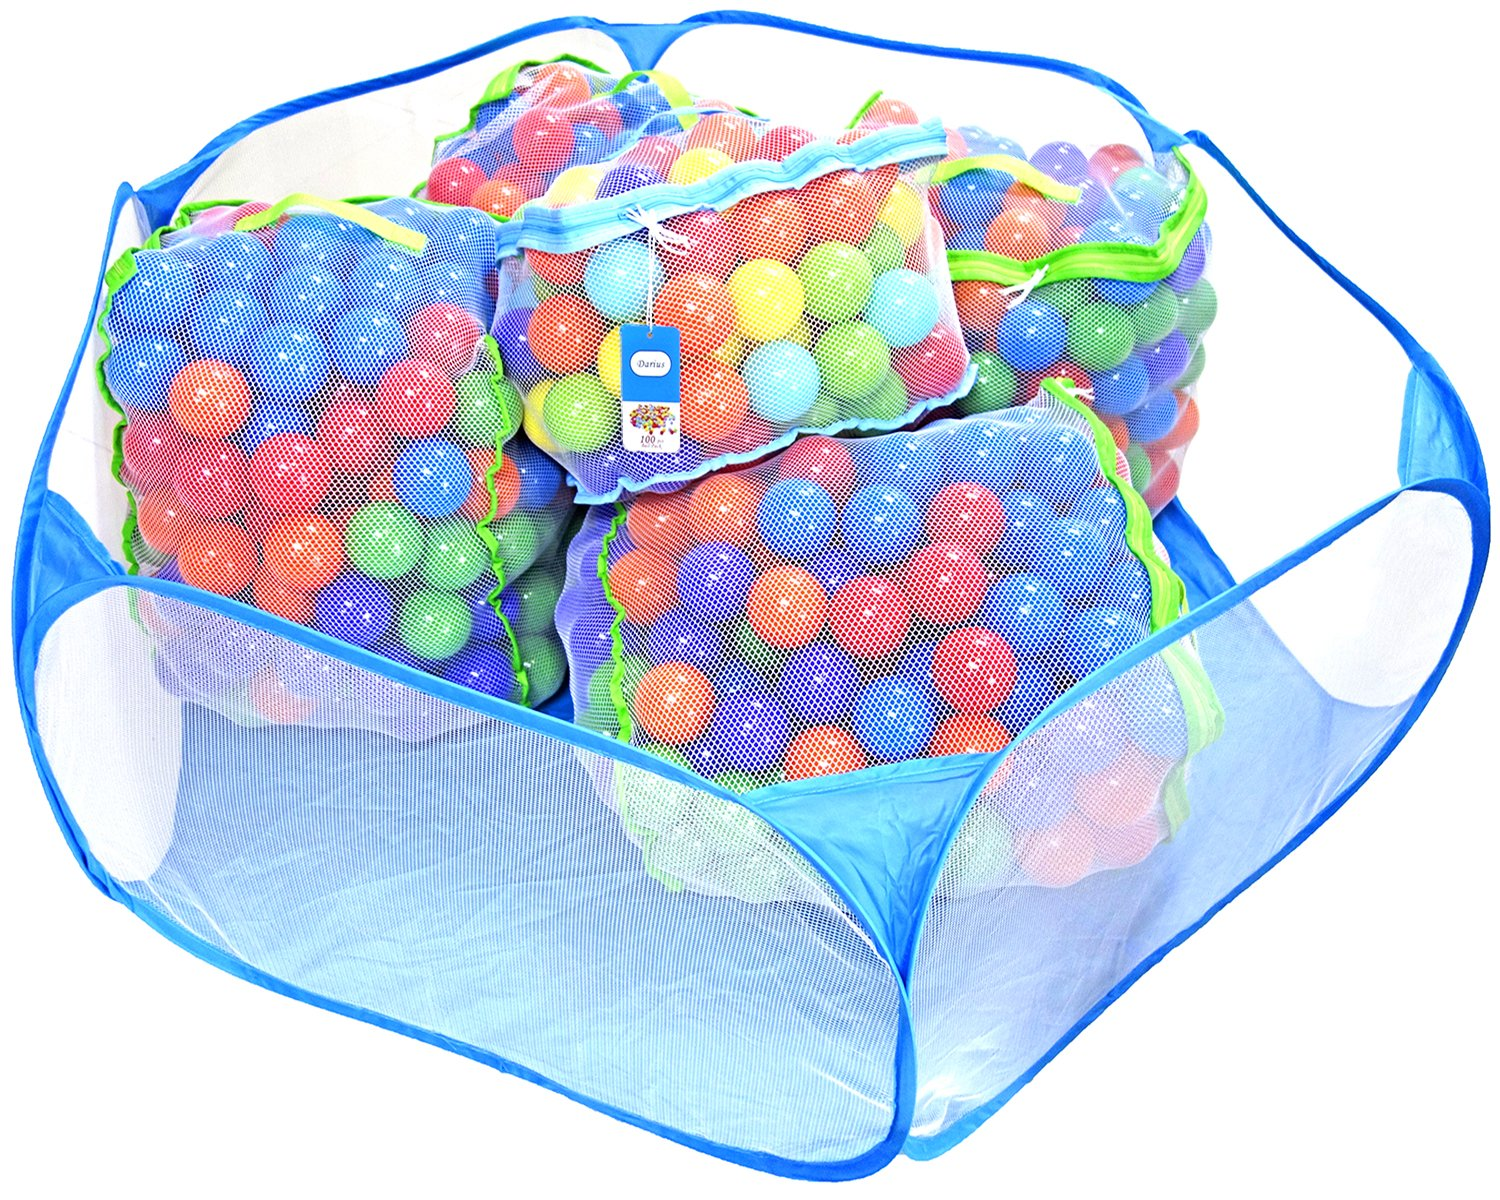 Darius Children Kids Ball Pit Portable Hexagon Playpen Easy Folding Ball Play Pool Toy Play Tent with Storage Bag for Indoor and Outdoor Balls not Included(Blue)